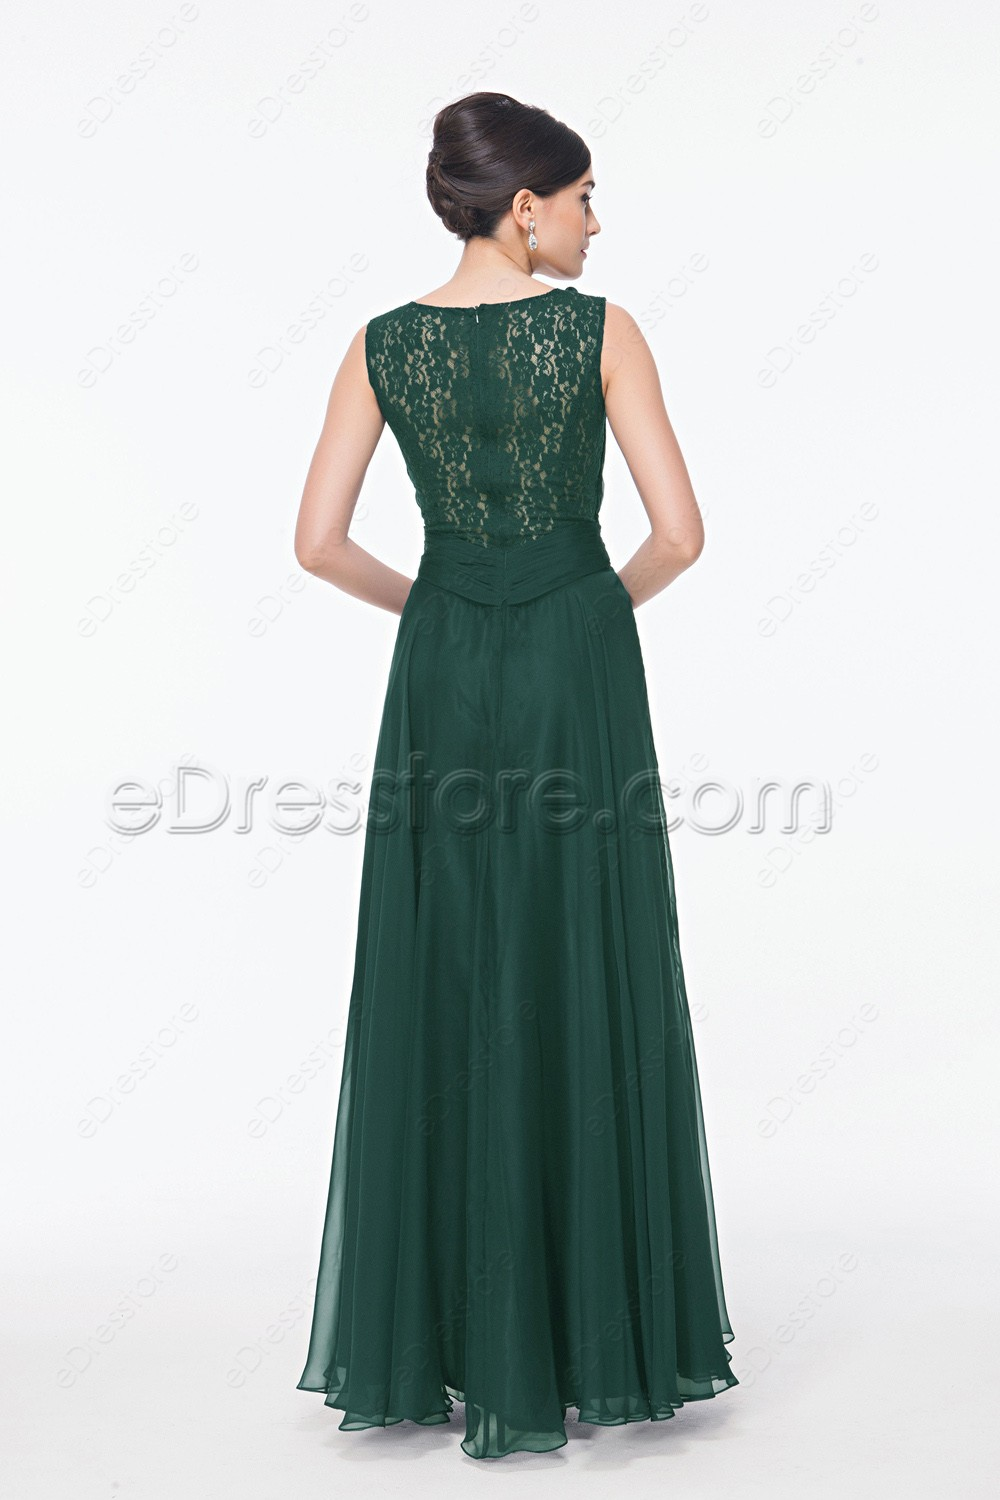 Backless Forest Green Long Formal Dresses